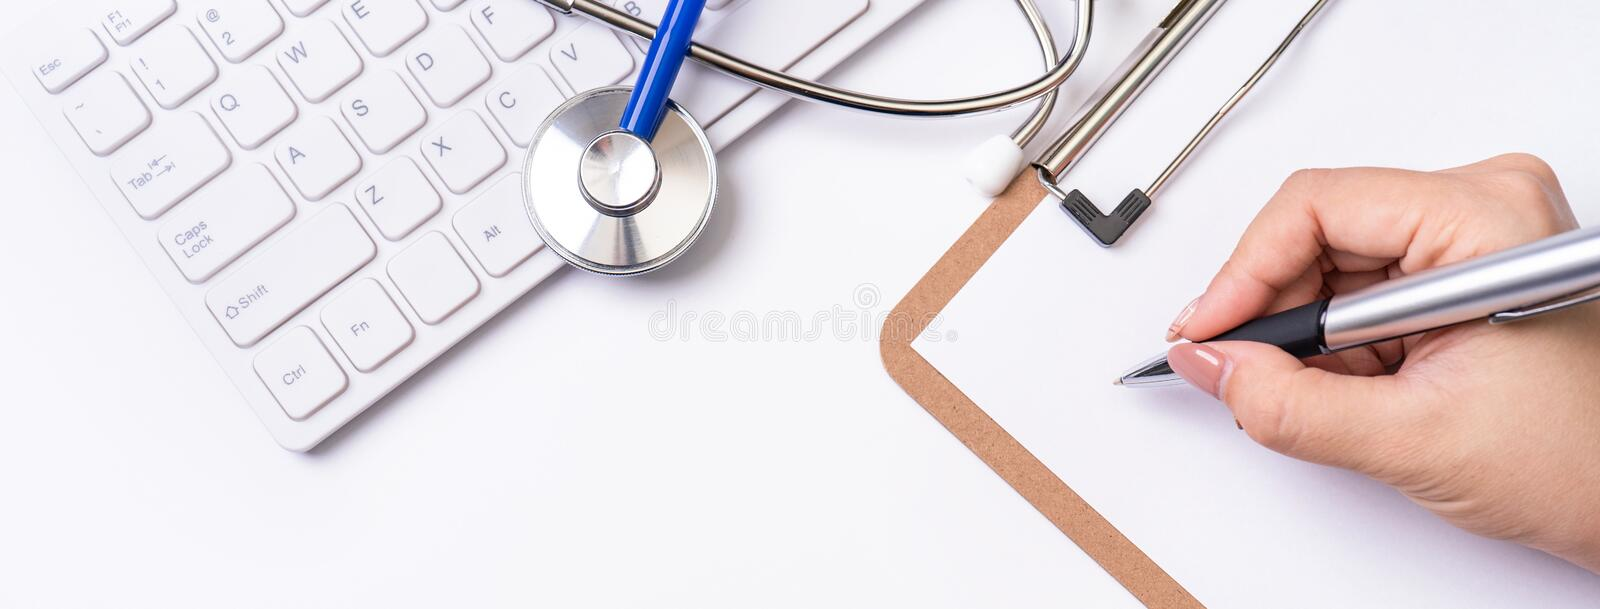 Female doctor writing a medical record case over clipboard on white working table with stethoscope, computer keyboard. Top view, royalty free stock photo